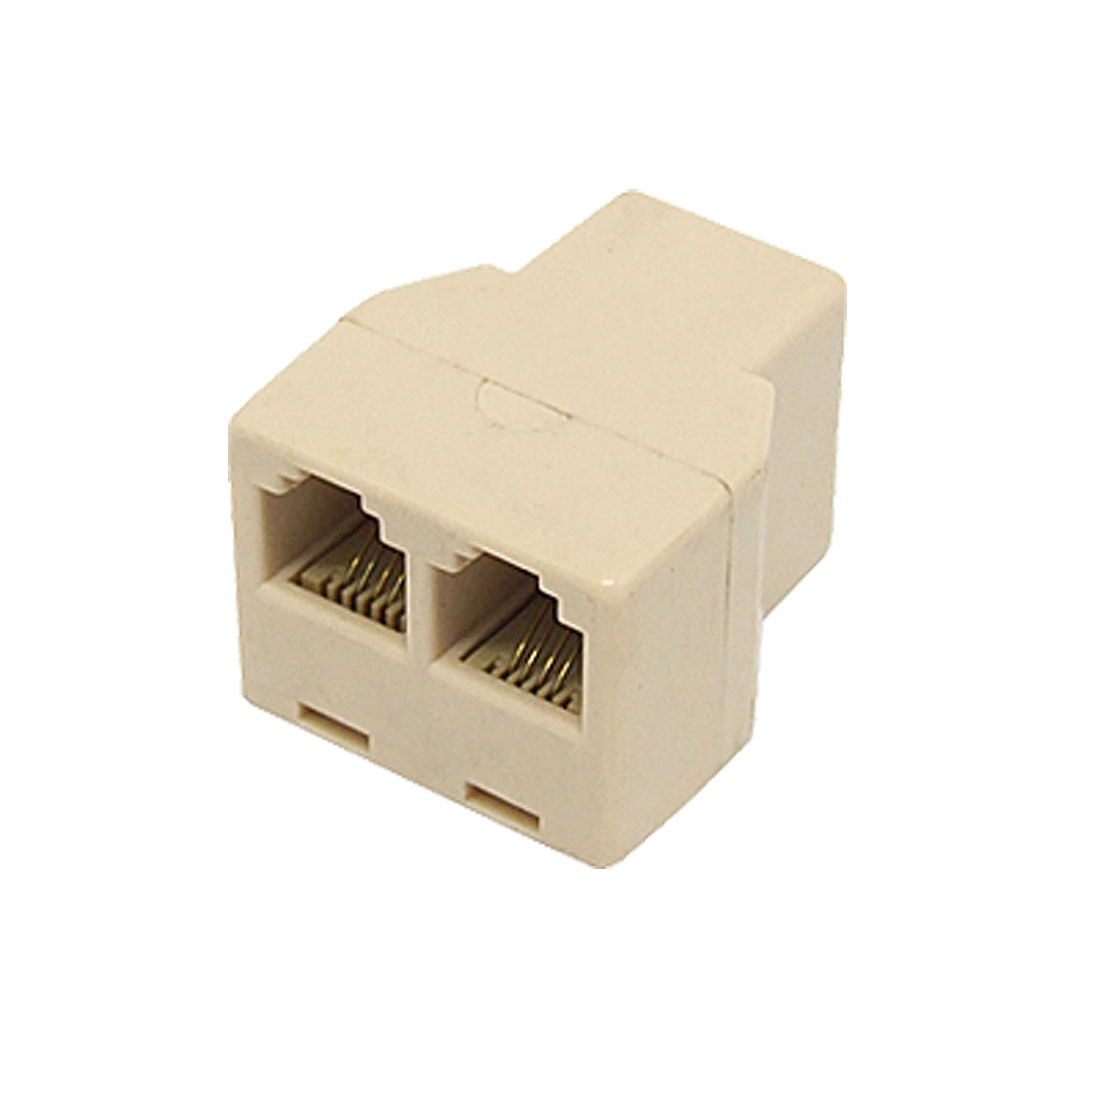 RJ-11 Female to 2 Female Phone CAT3 Connector Jack Adapter Splitter